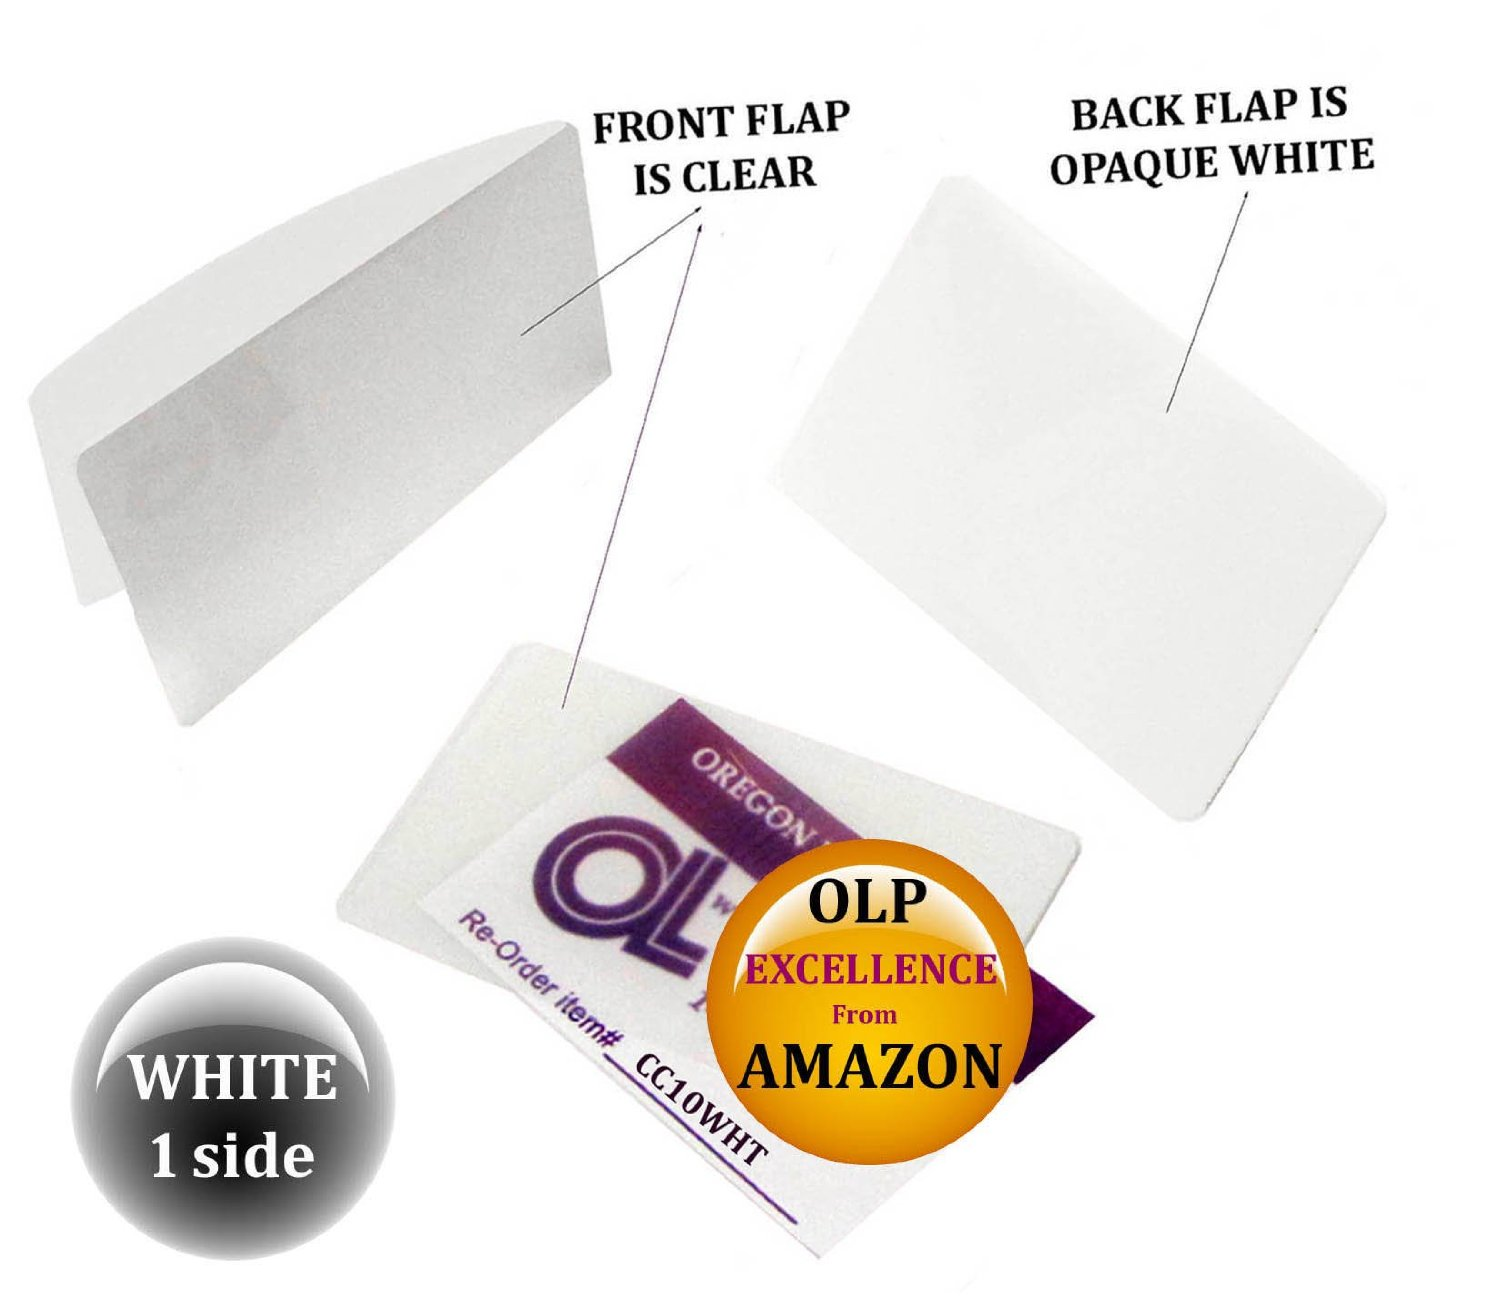 Qty 5000 White/Clear Credit Card Laminating Pouches 2-1/8 x 3-3/8 by LAM-IT-ALL